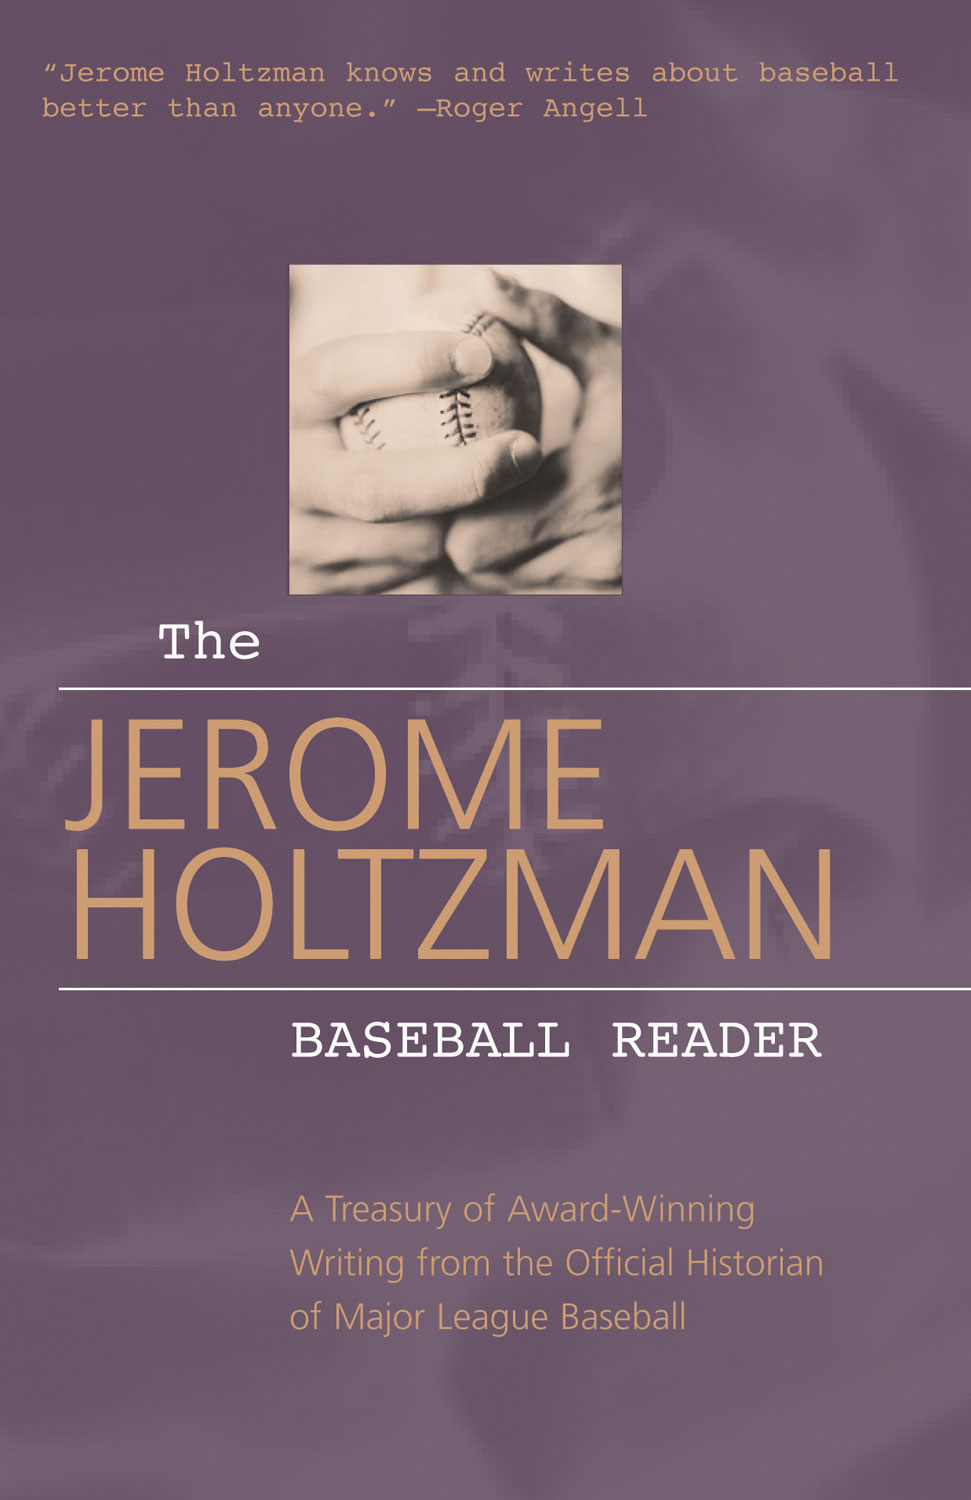 The Jerome Holtzman Baseball Reader: A Treasury of Award-Winning Writing from the Official Historian of Major League Baseball By: Jerome Holtzman